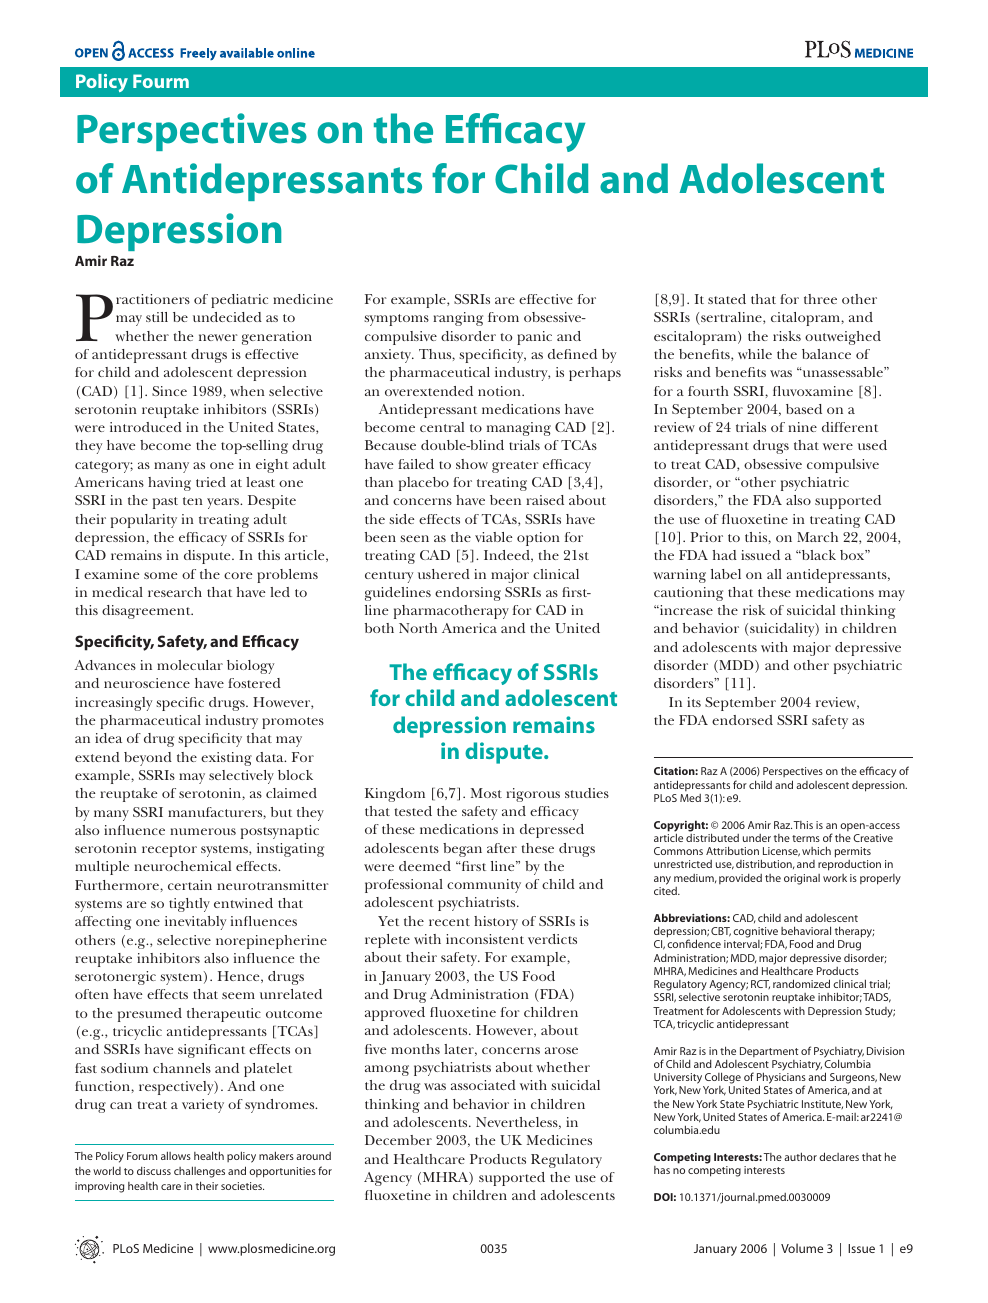 Perspectives on the Efficacy of Antidepressants for Child